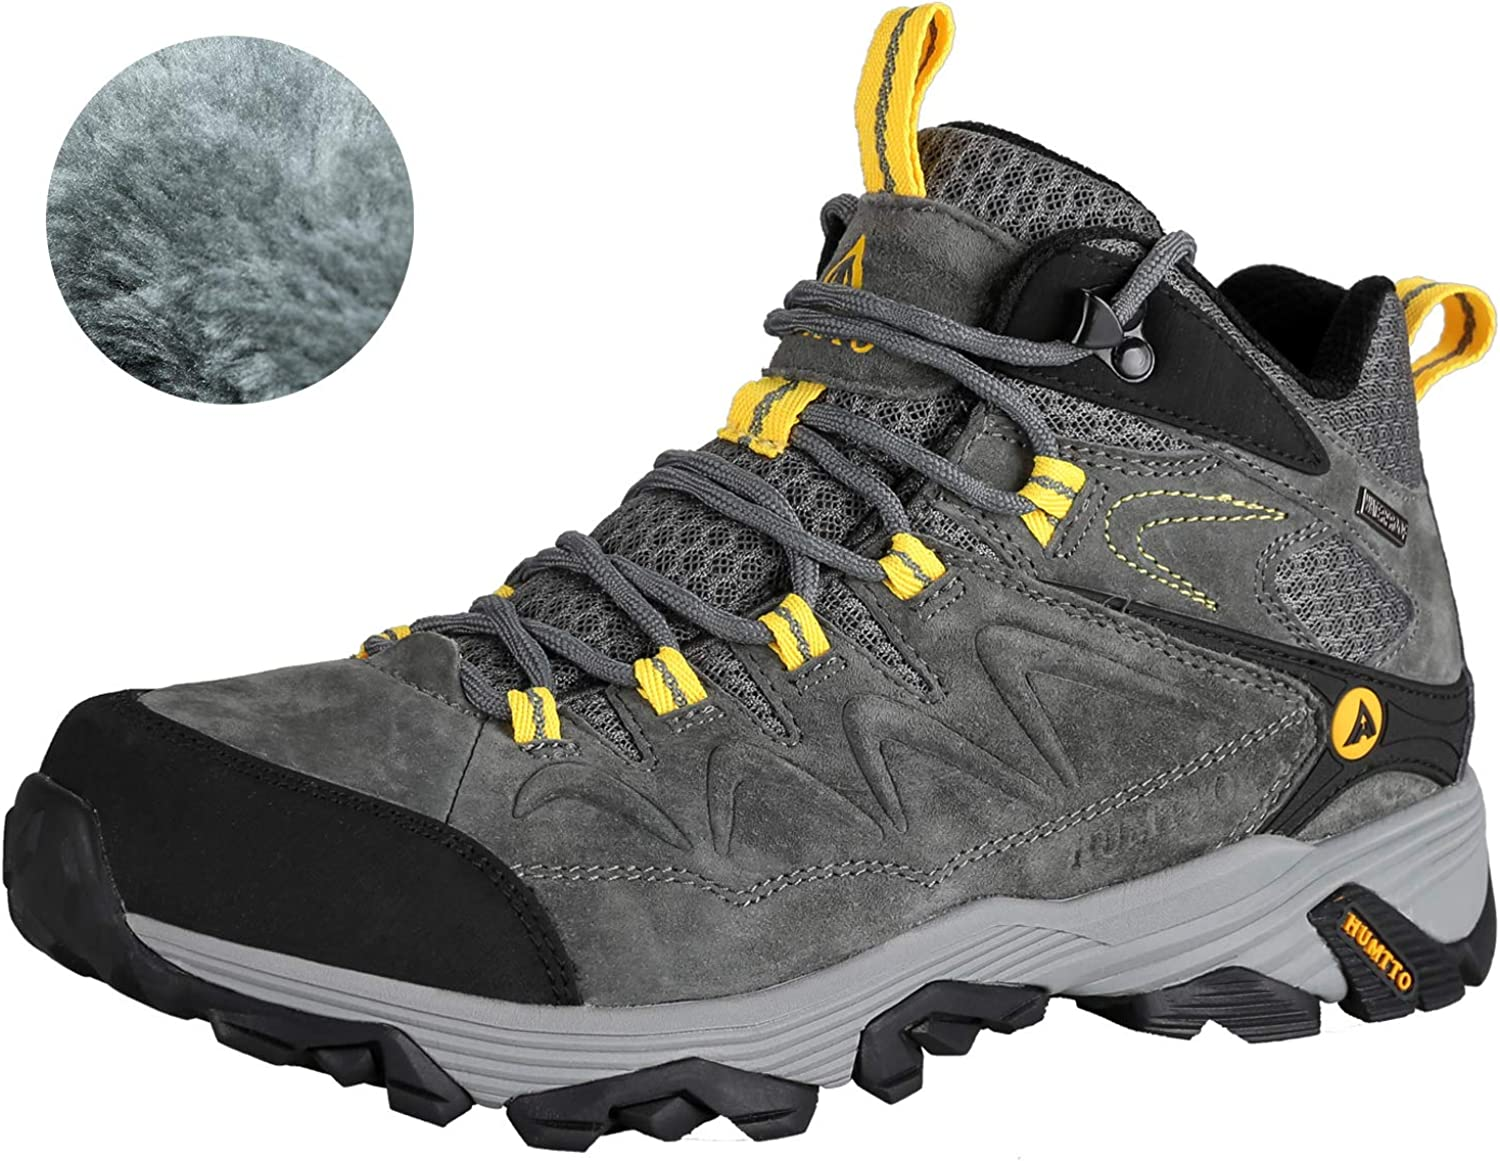 HUMTTO Mens Outdoor Non-Slip High-Top Warm Plus Velvet Hiking Boots GR10